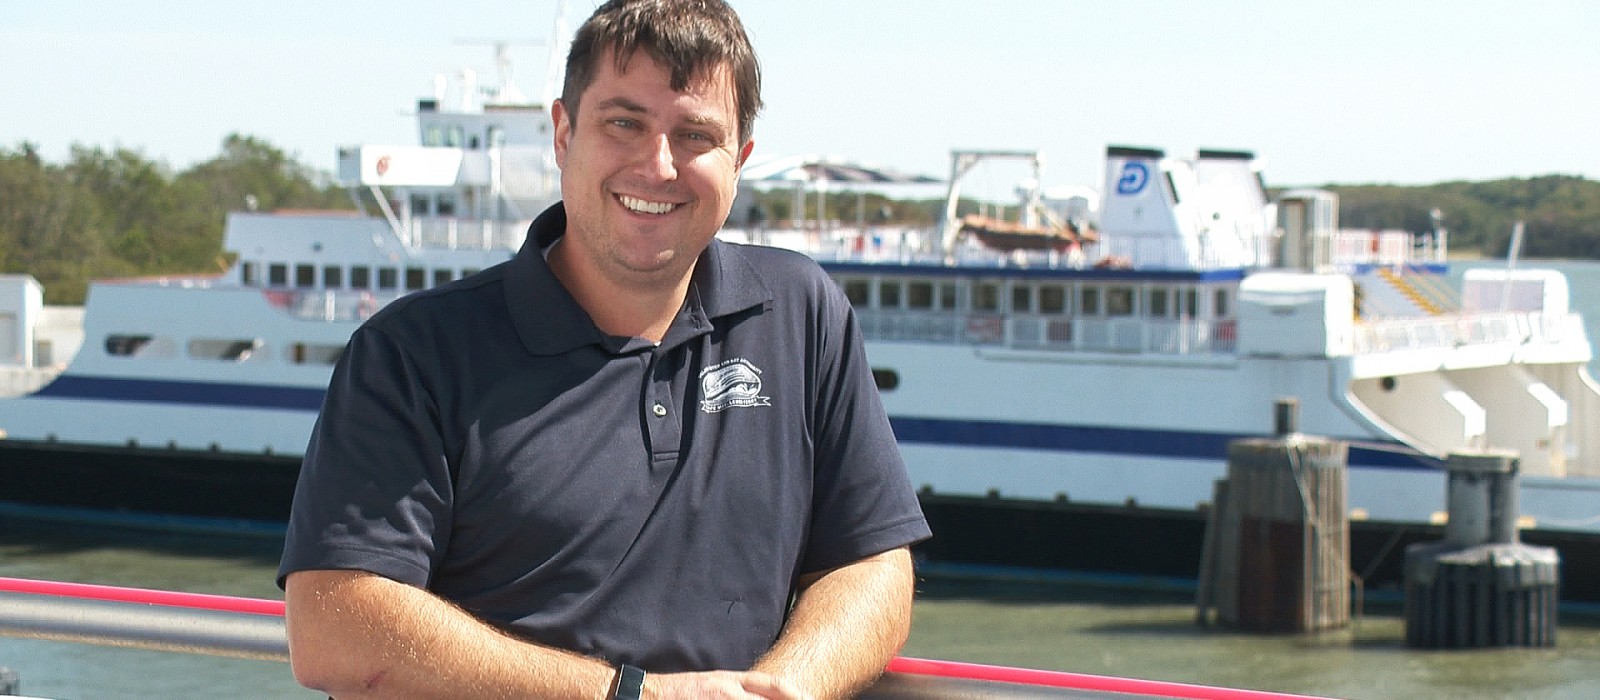 Jeff Robert, Port Engineer, Cape May-Lewes Ferry on the 03 deck of the M/V Delaware. The M/V Cape Henlopen is in the distance.